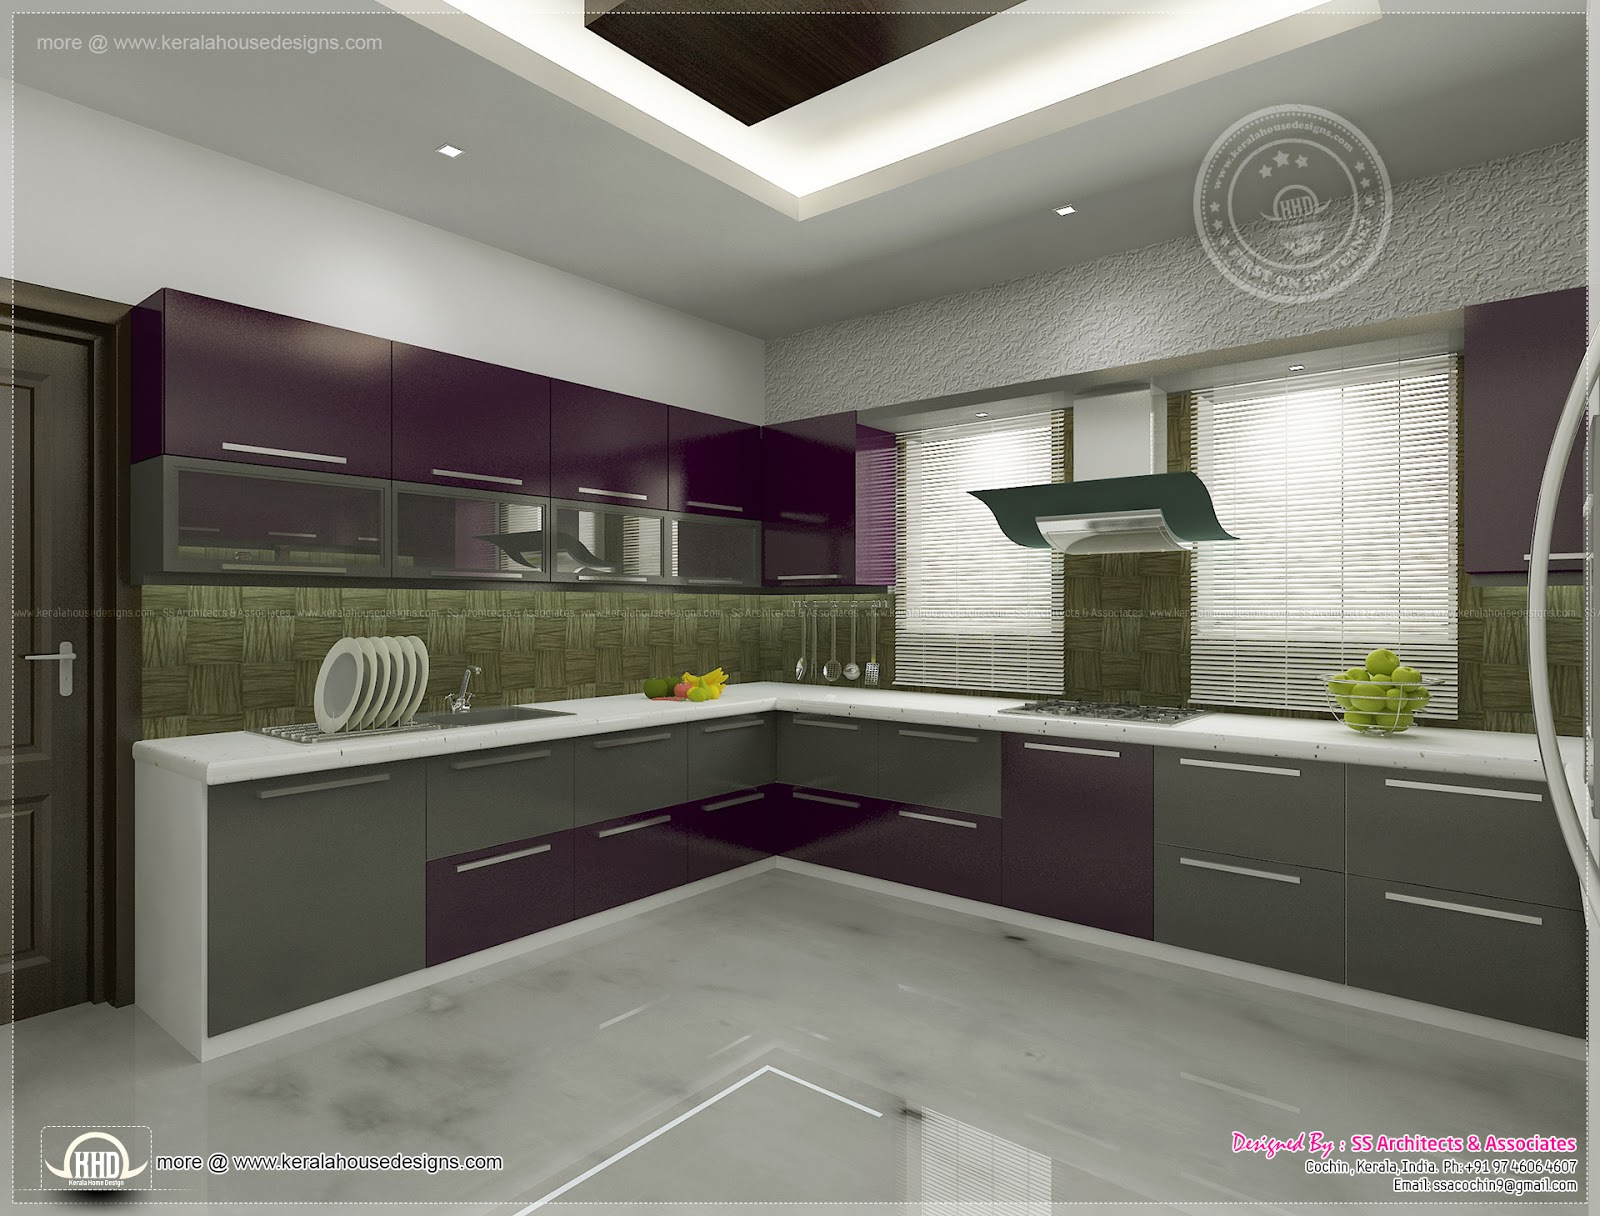 Kitchen interior views by ss architects cochin kerala for Interior decoration of kitchen pictures